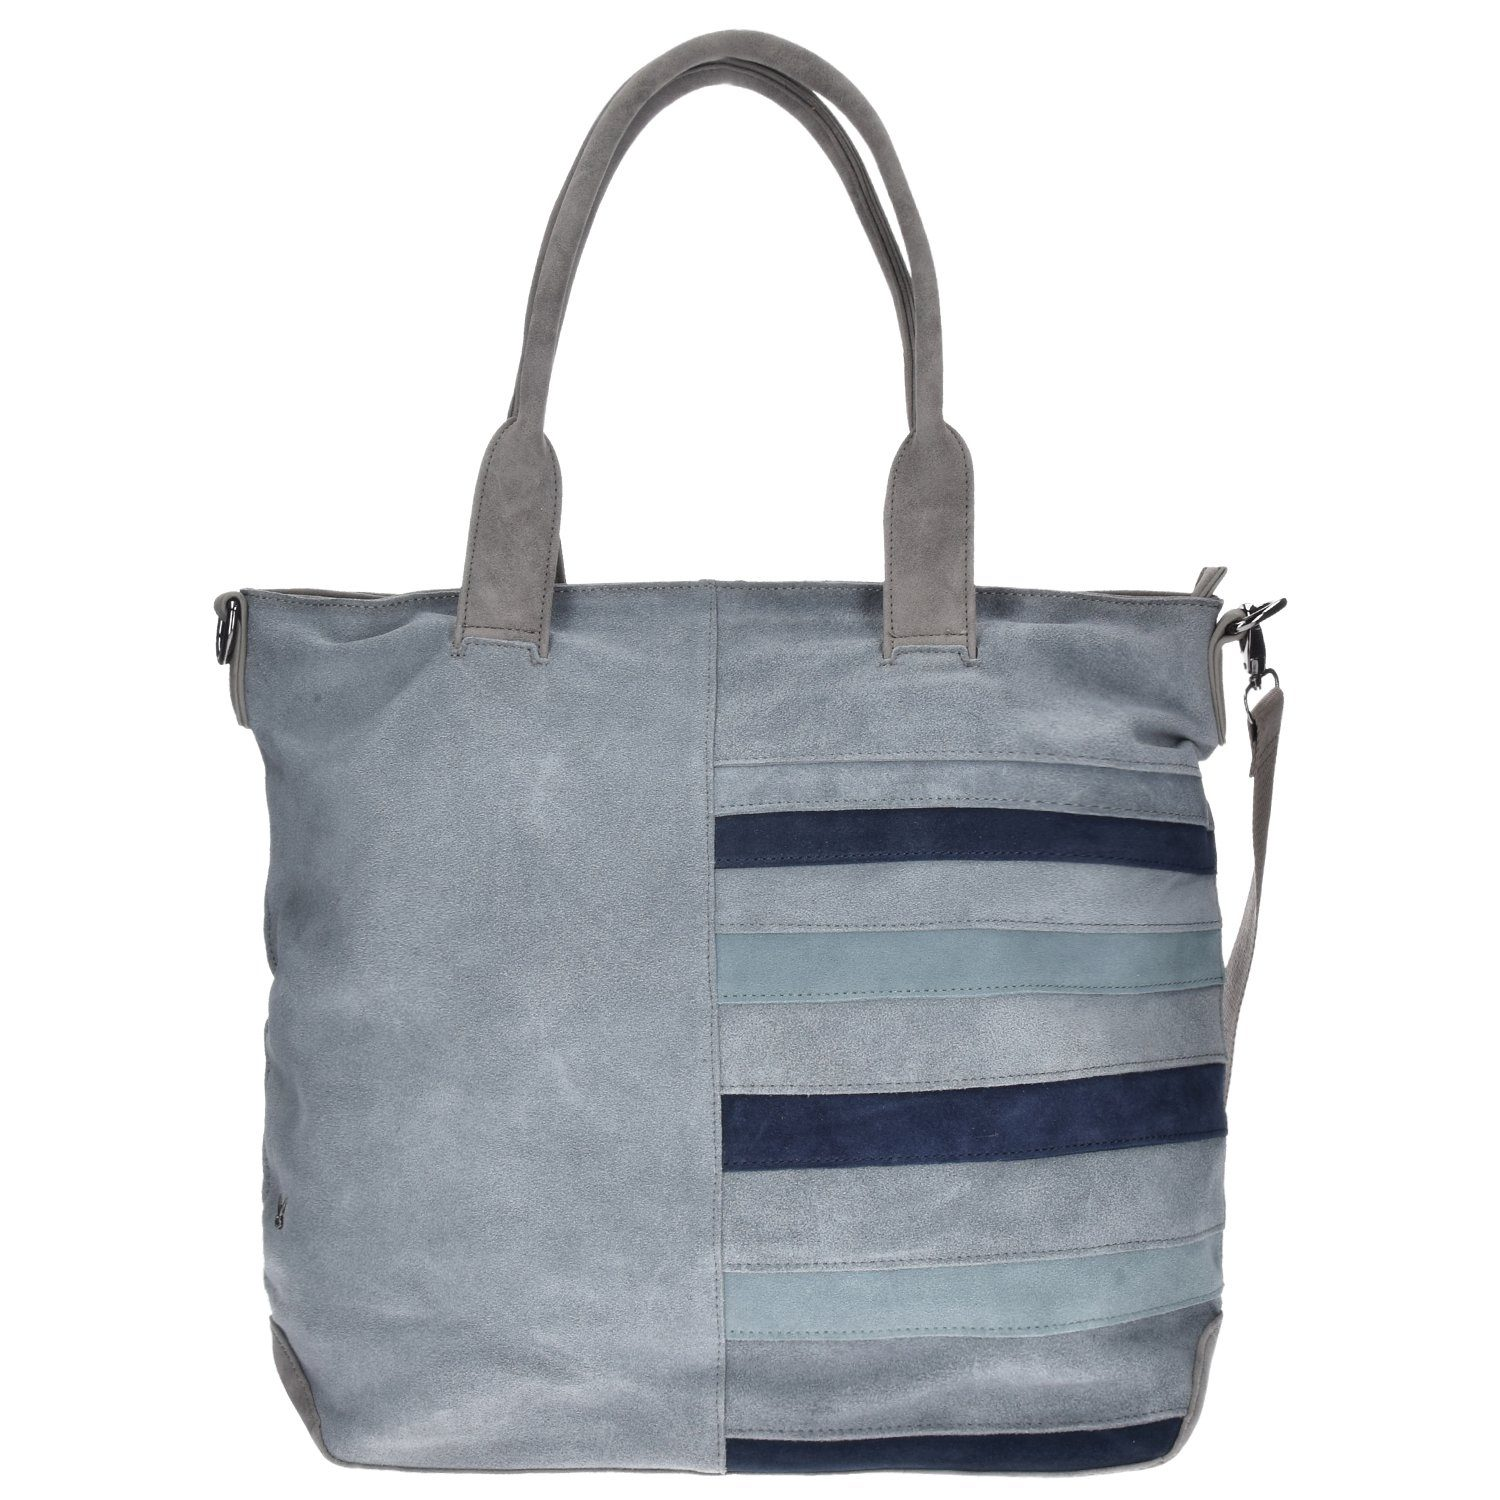 SANSIBAR Sansibar Colorful Shopper Tasche 43 cm